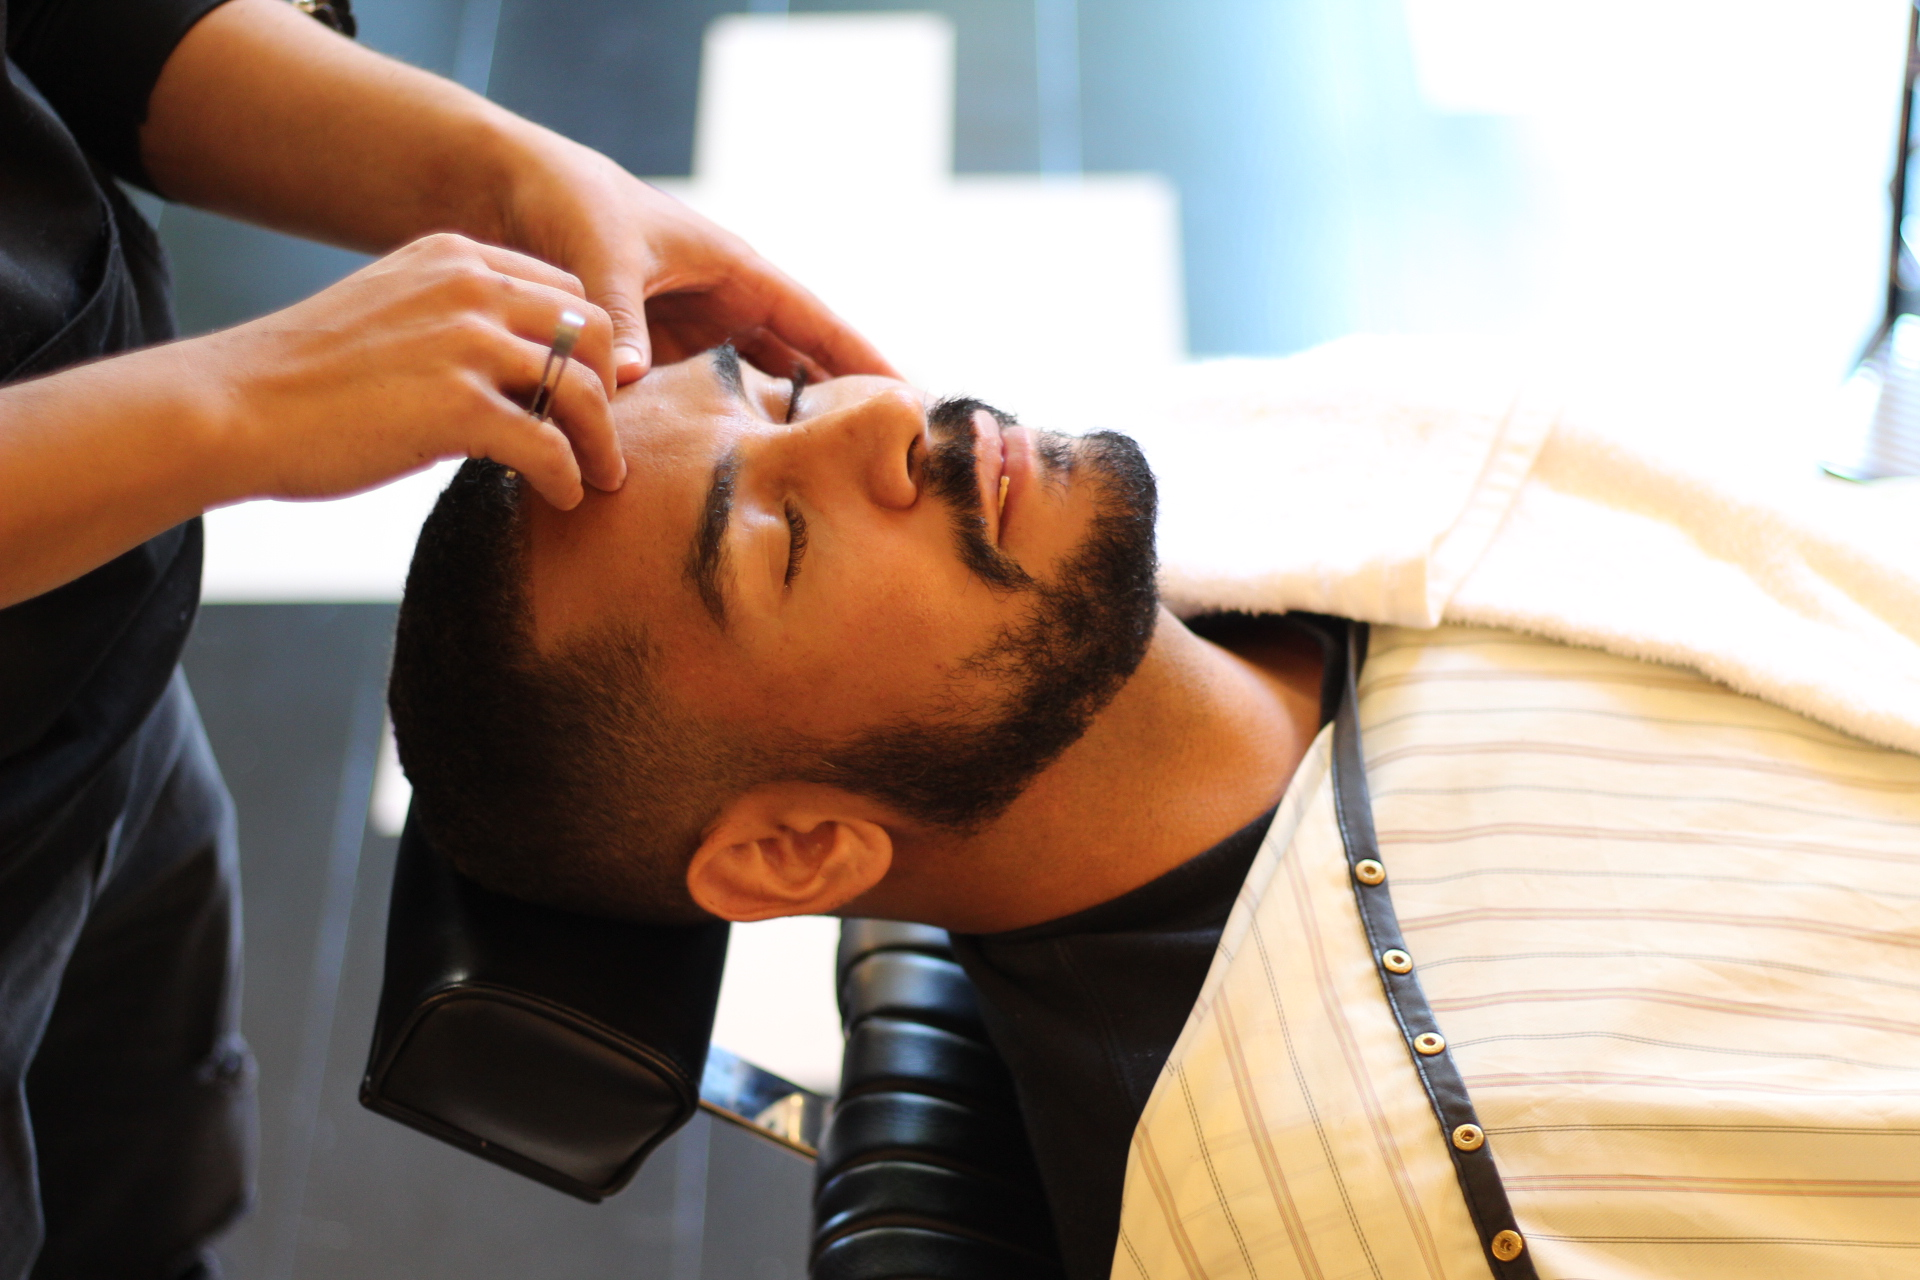 Church Beard Trim  - The Church beard trim is finished with a straight-razor and includes a series of hold and cold compresses using towels dipped in precious essential oils like Neroli and Rose.